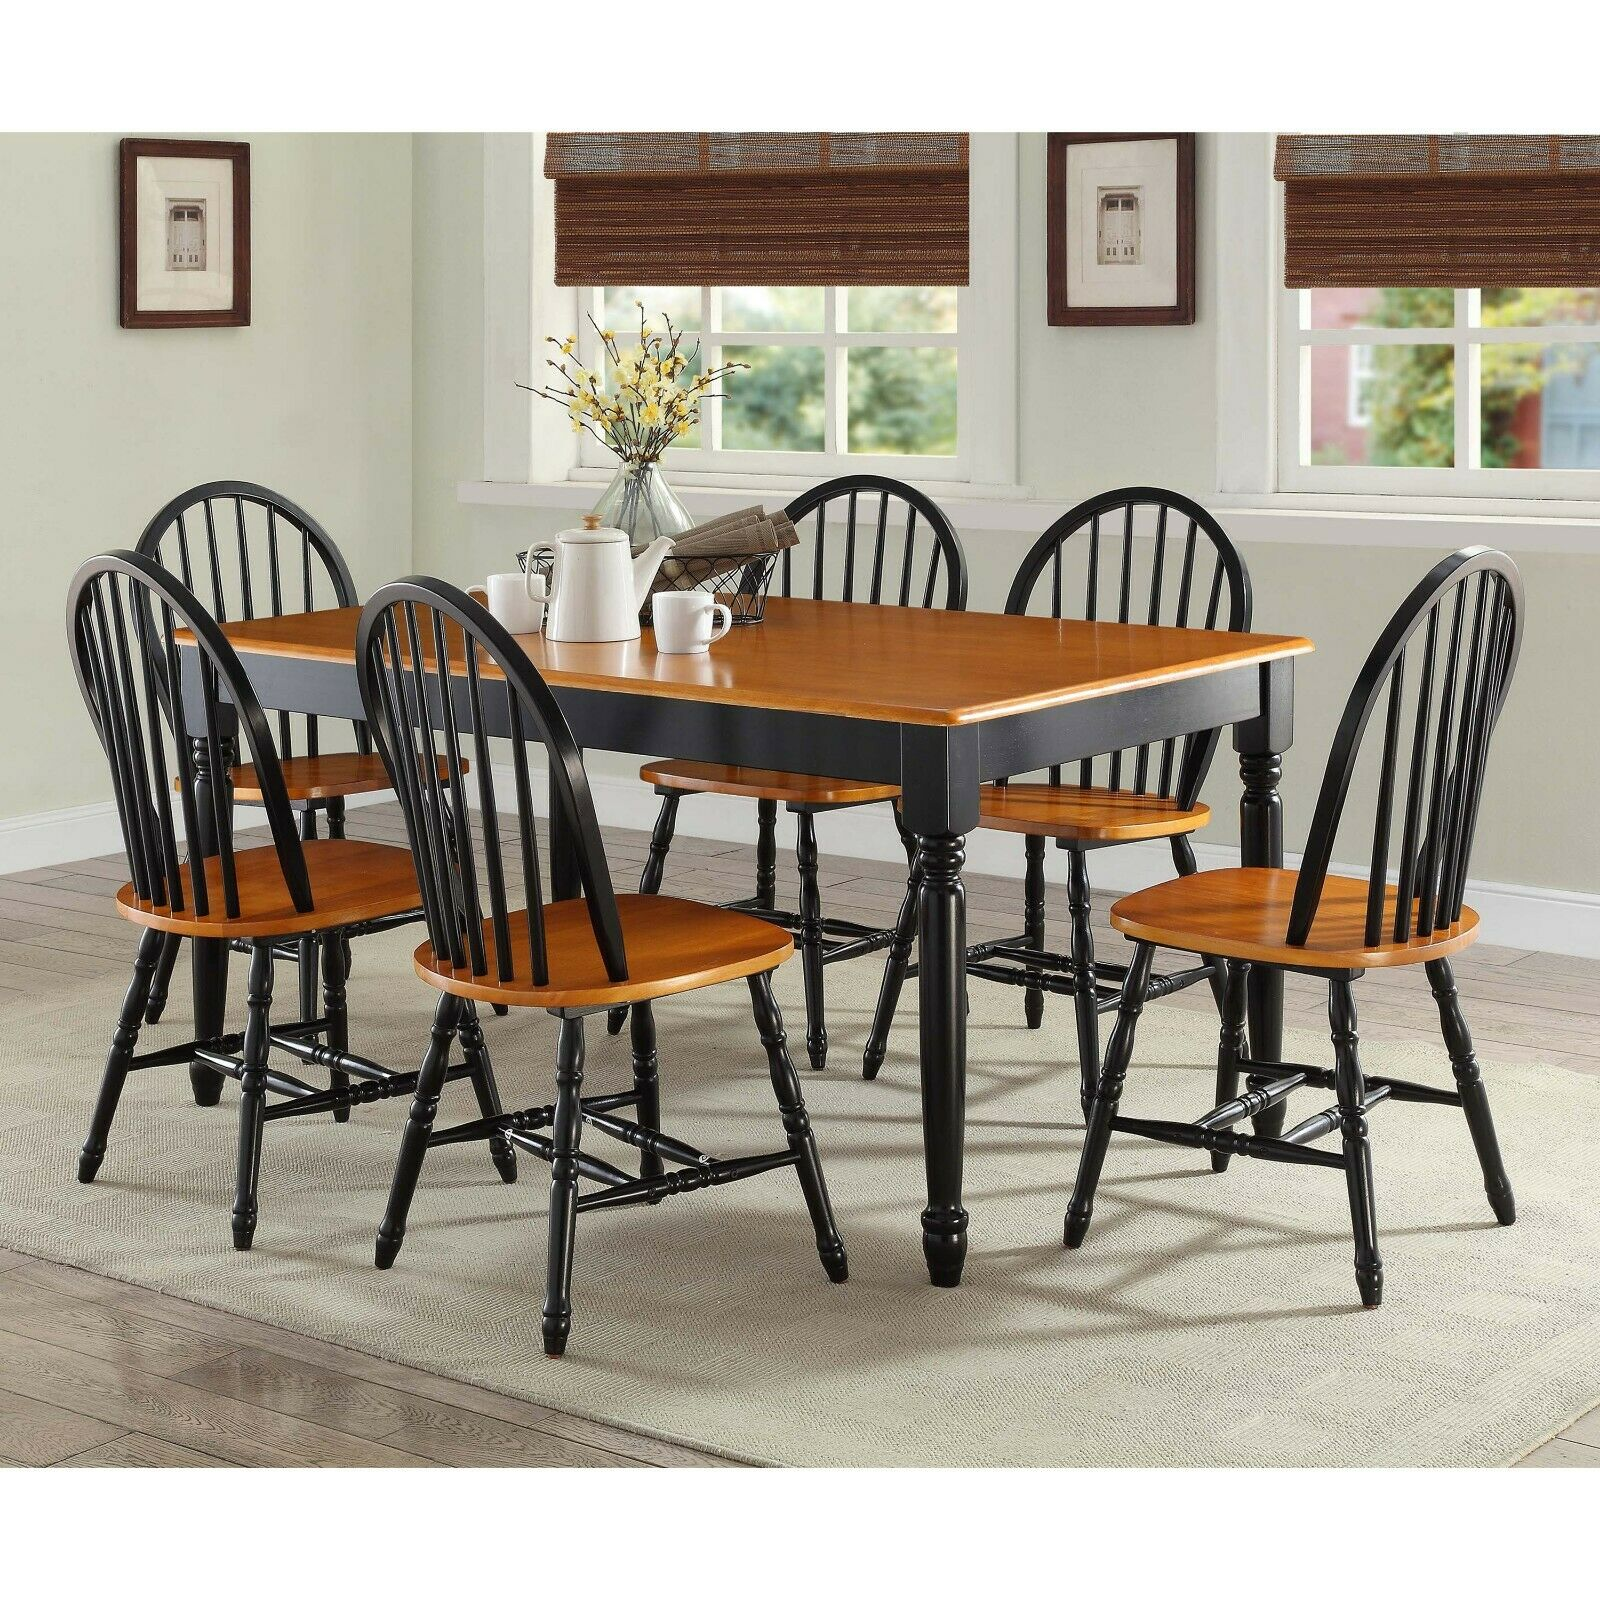 Image of: Dining Room Table Set Farmhouse Country Wood Kitchen Tables And Chairs 7 Piece For Sale Online